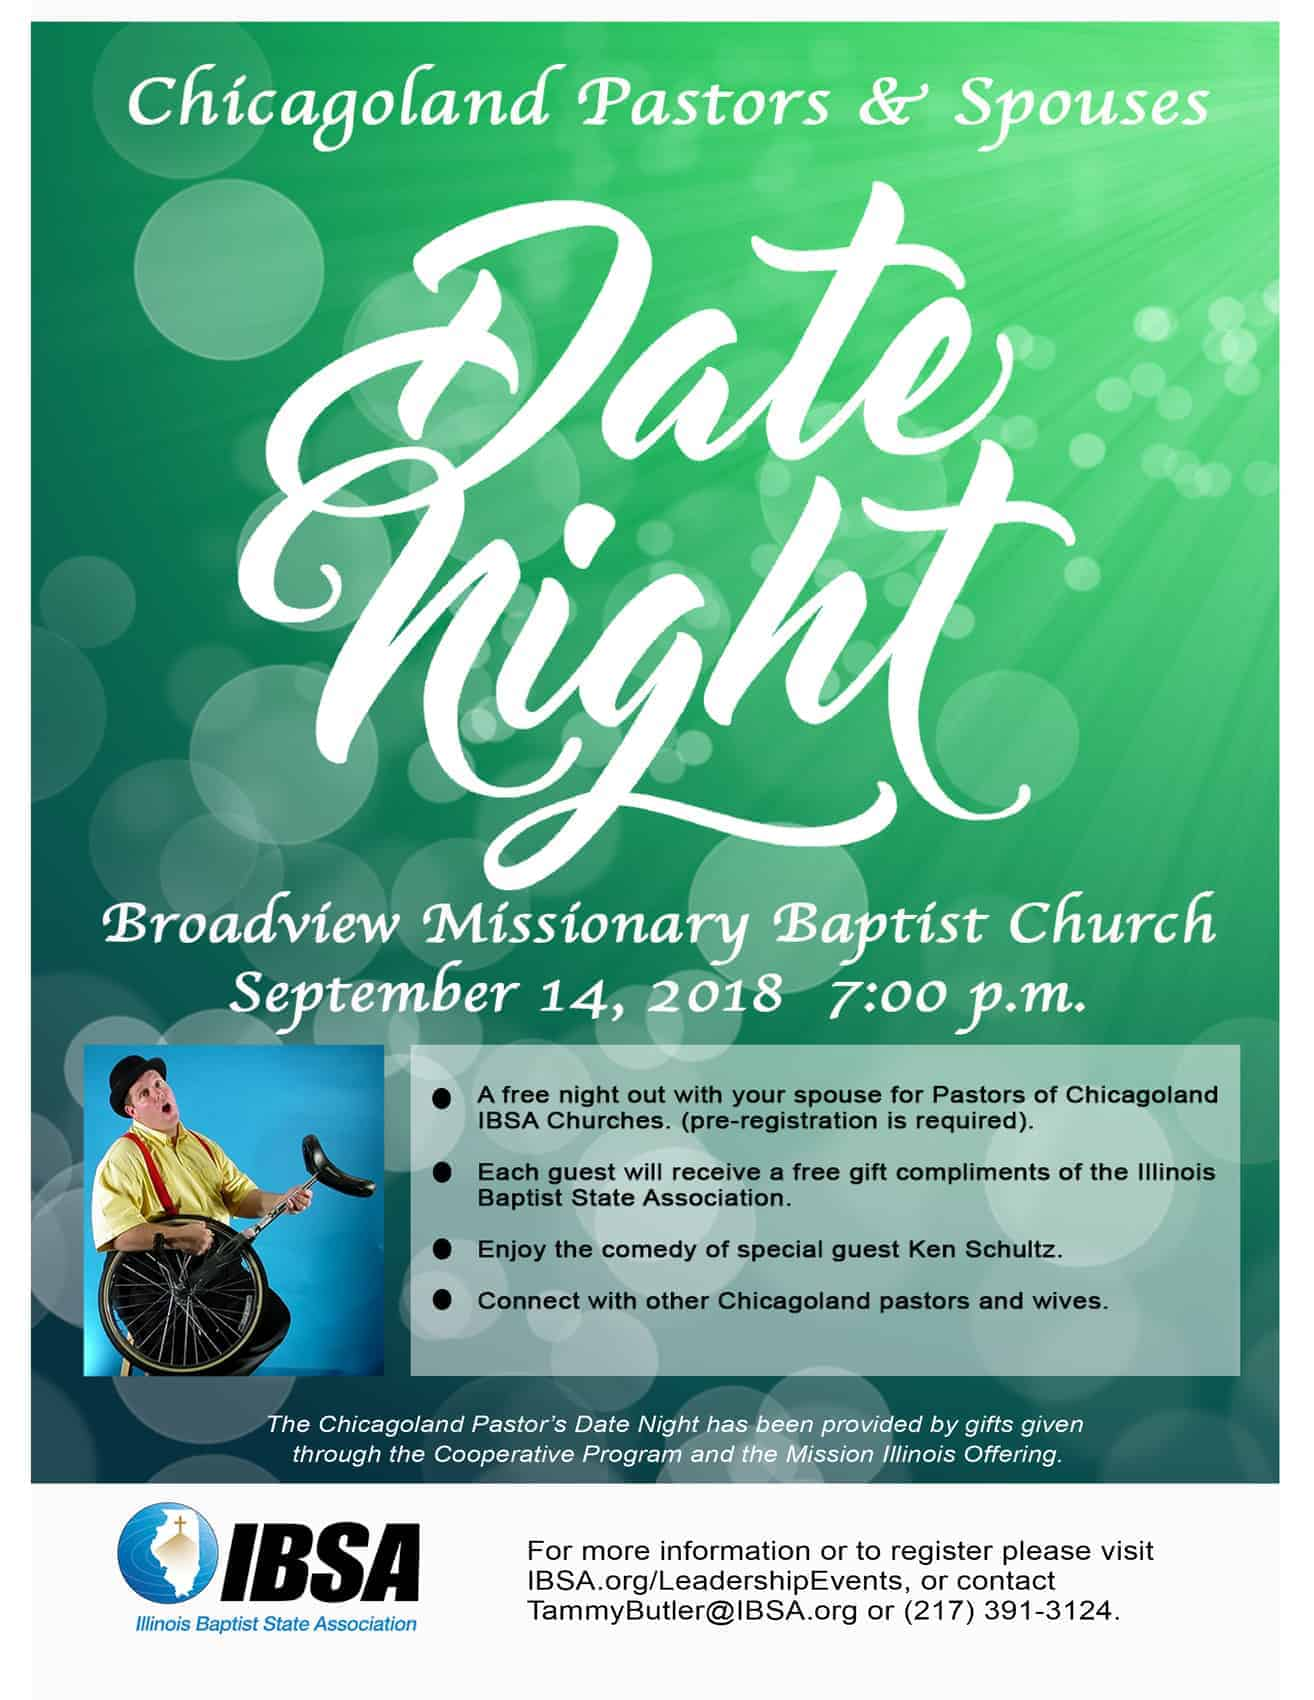 Chicagoland Pastors and Spouses Date Night